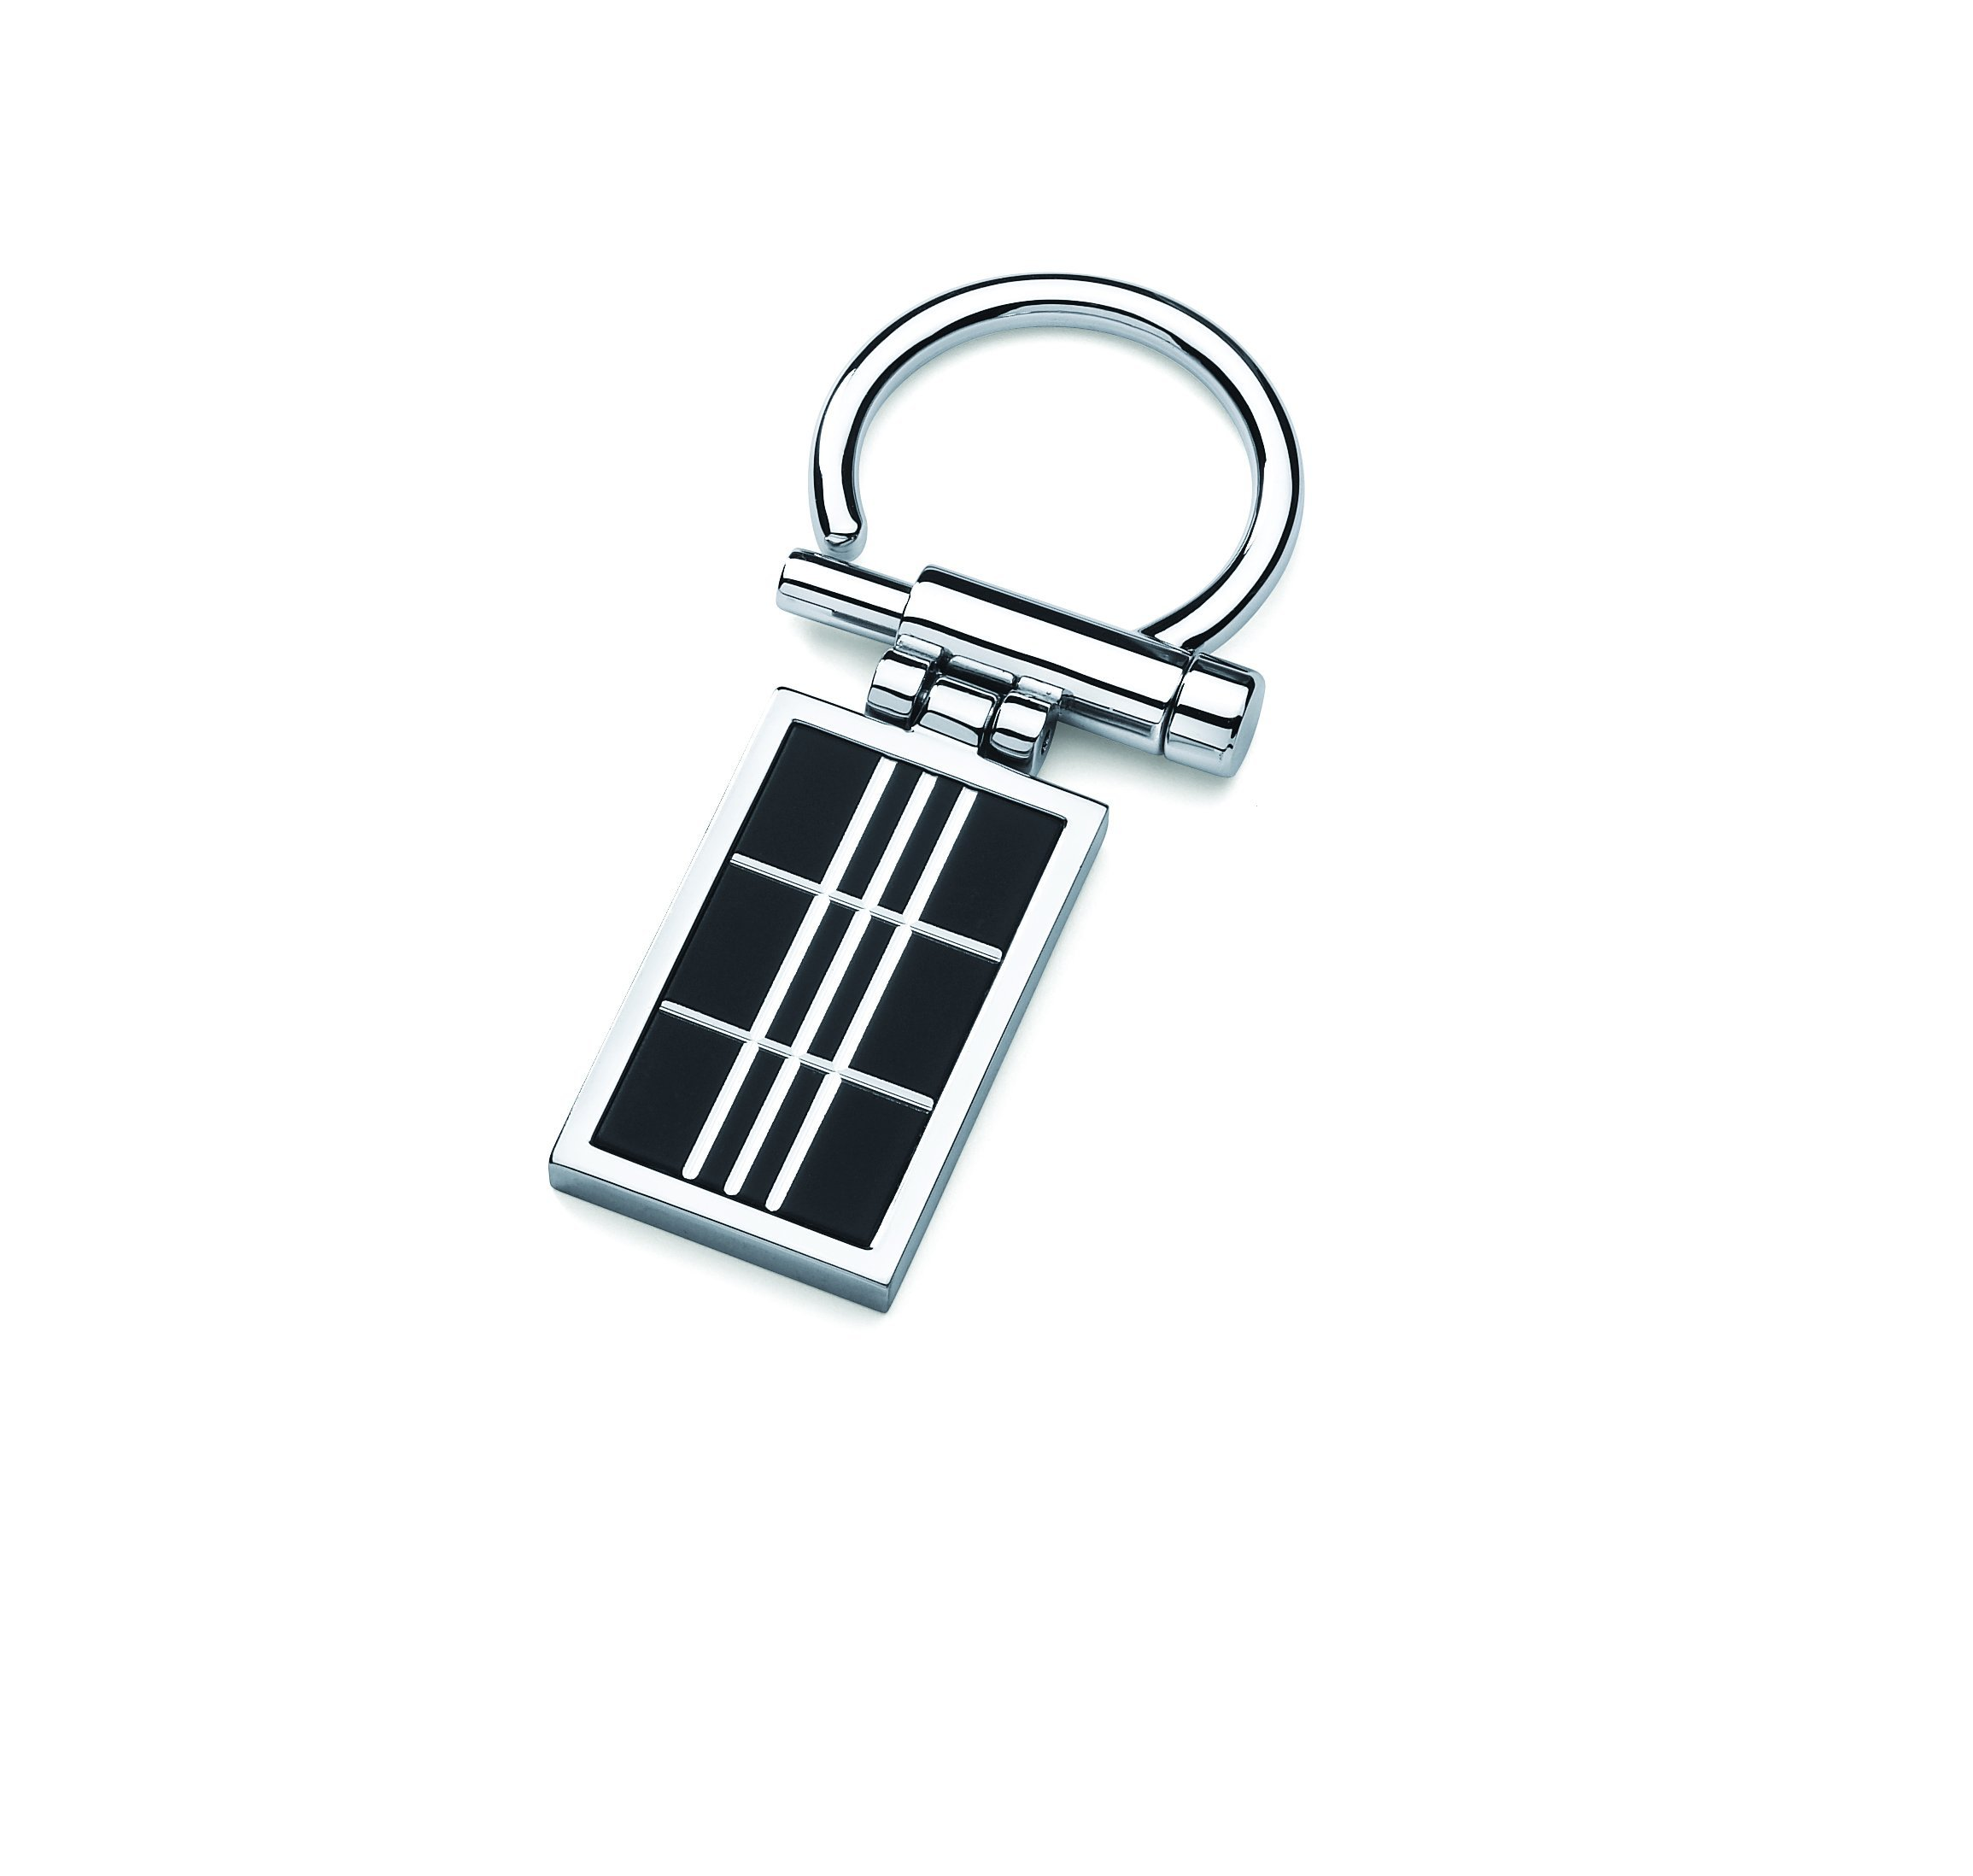 Men's Stainless Steel Key Chain With Black Matte Accent